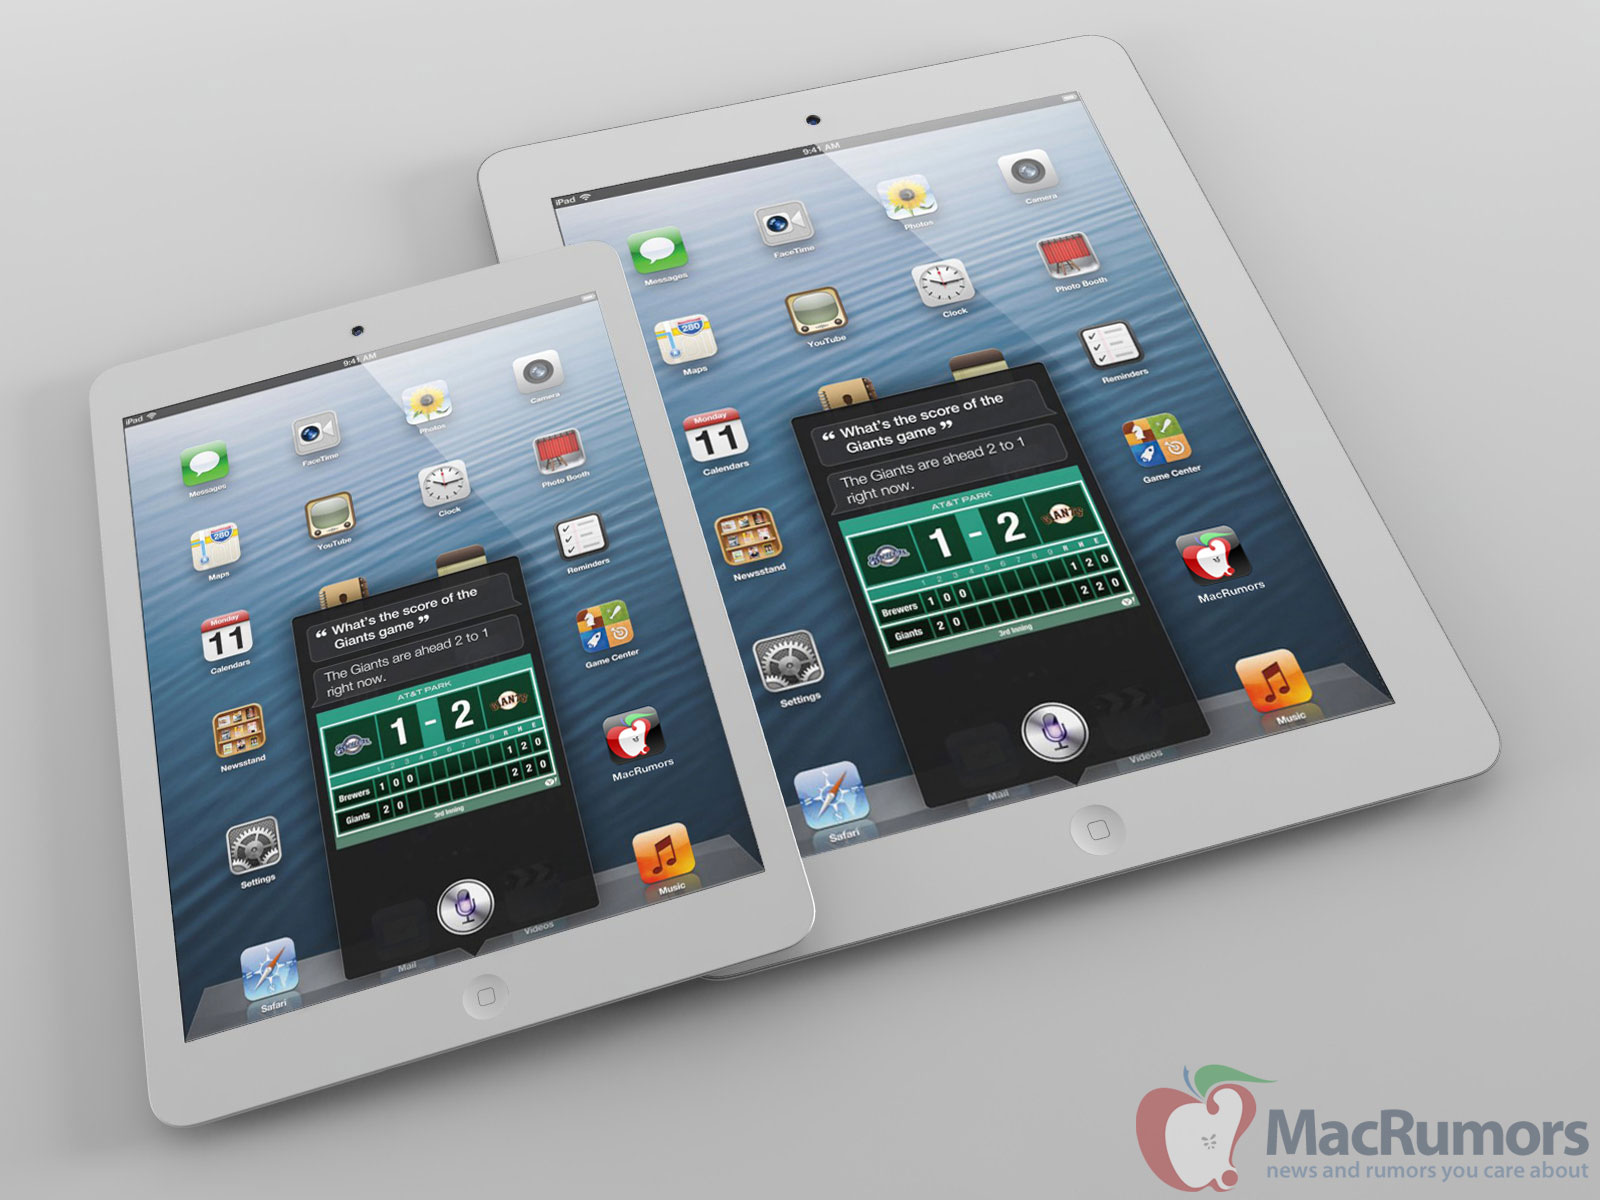 Mockup do iPad mini